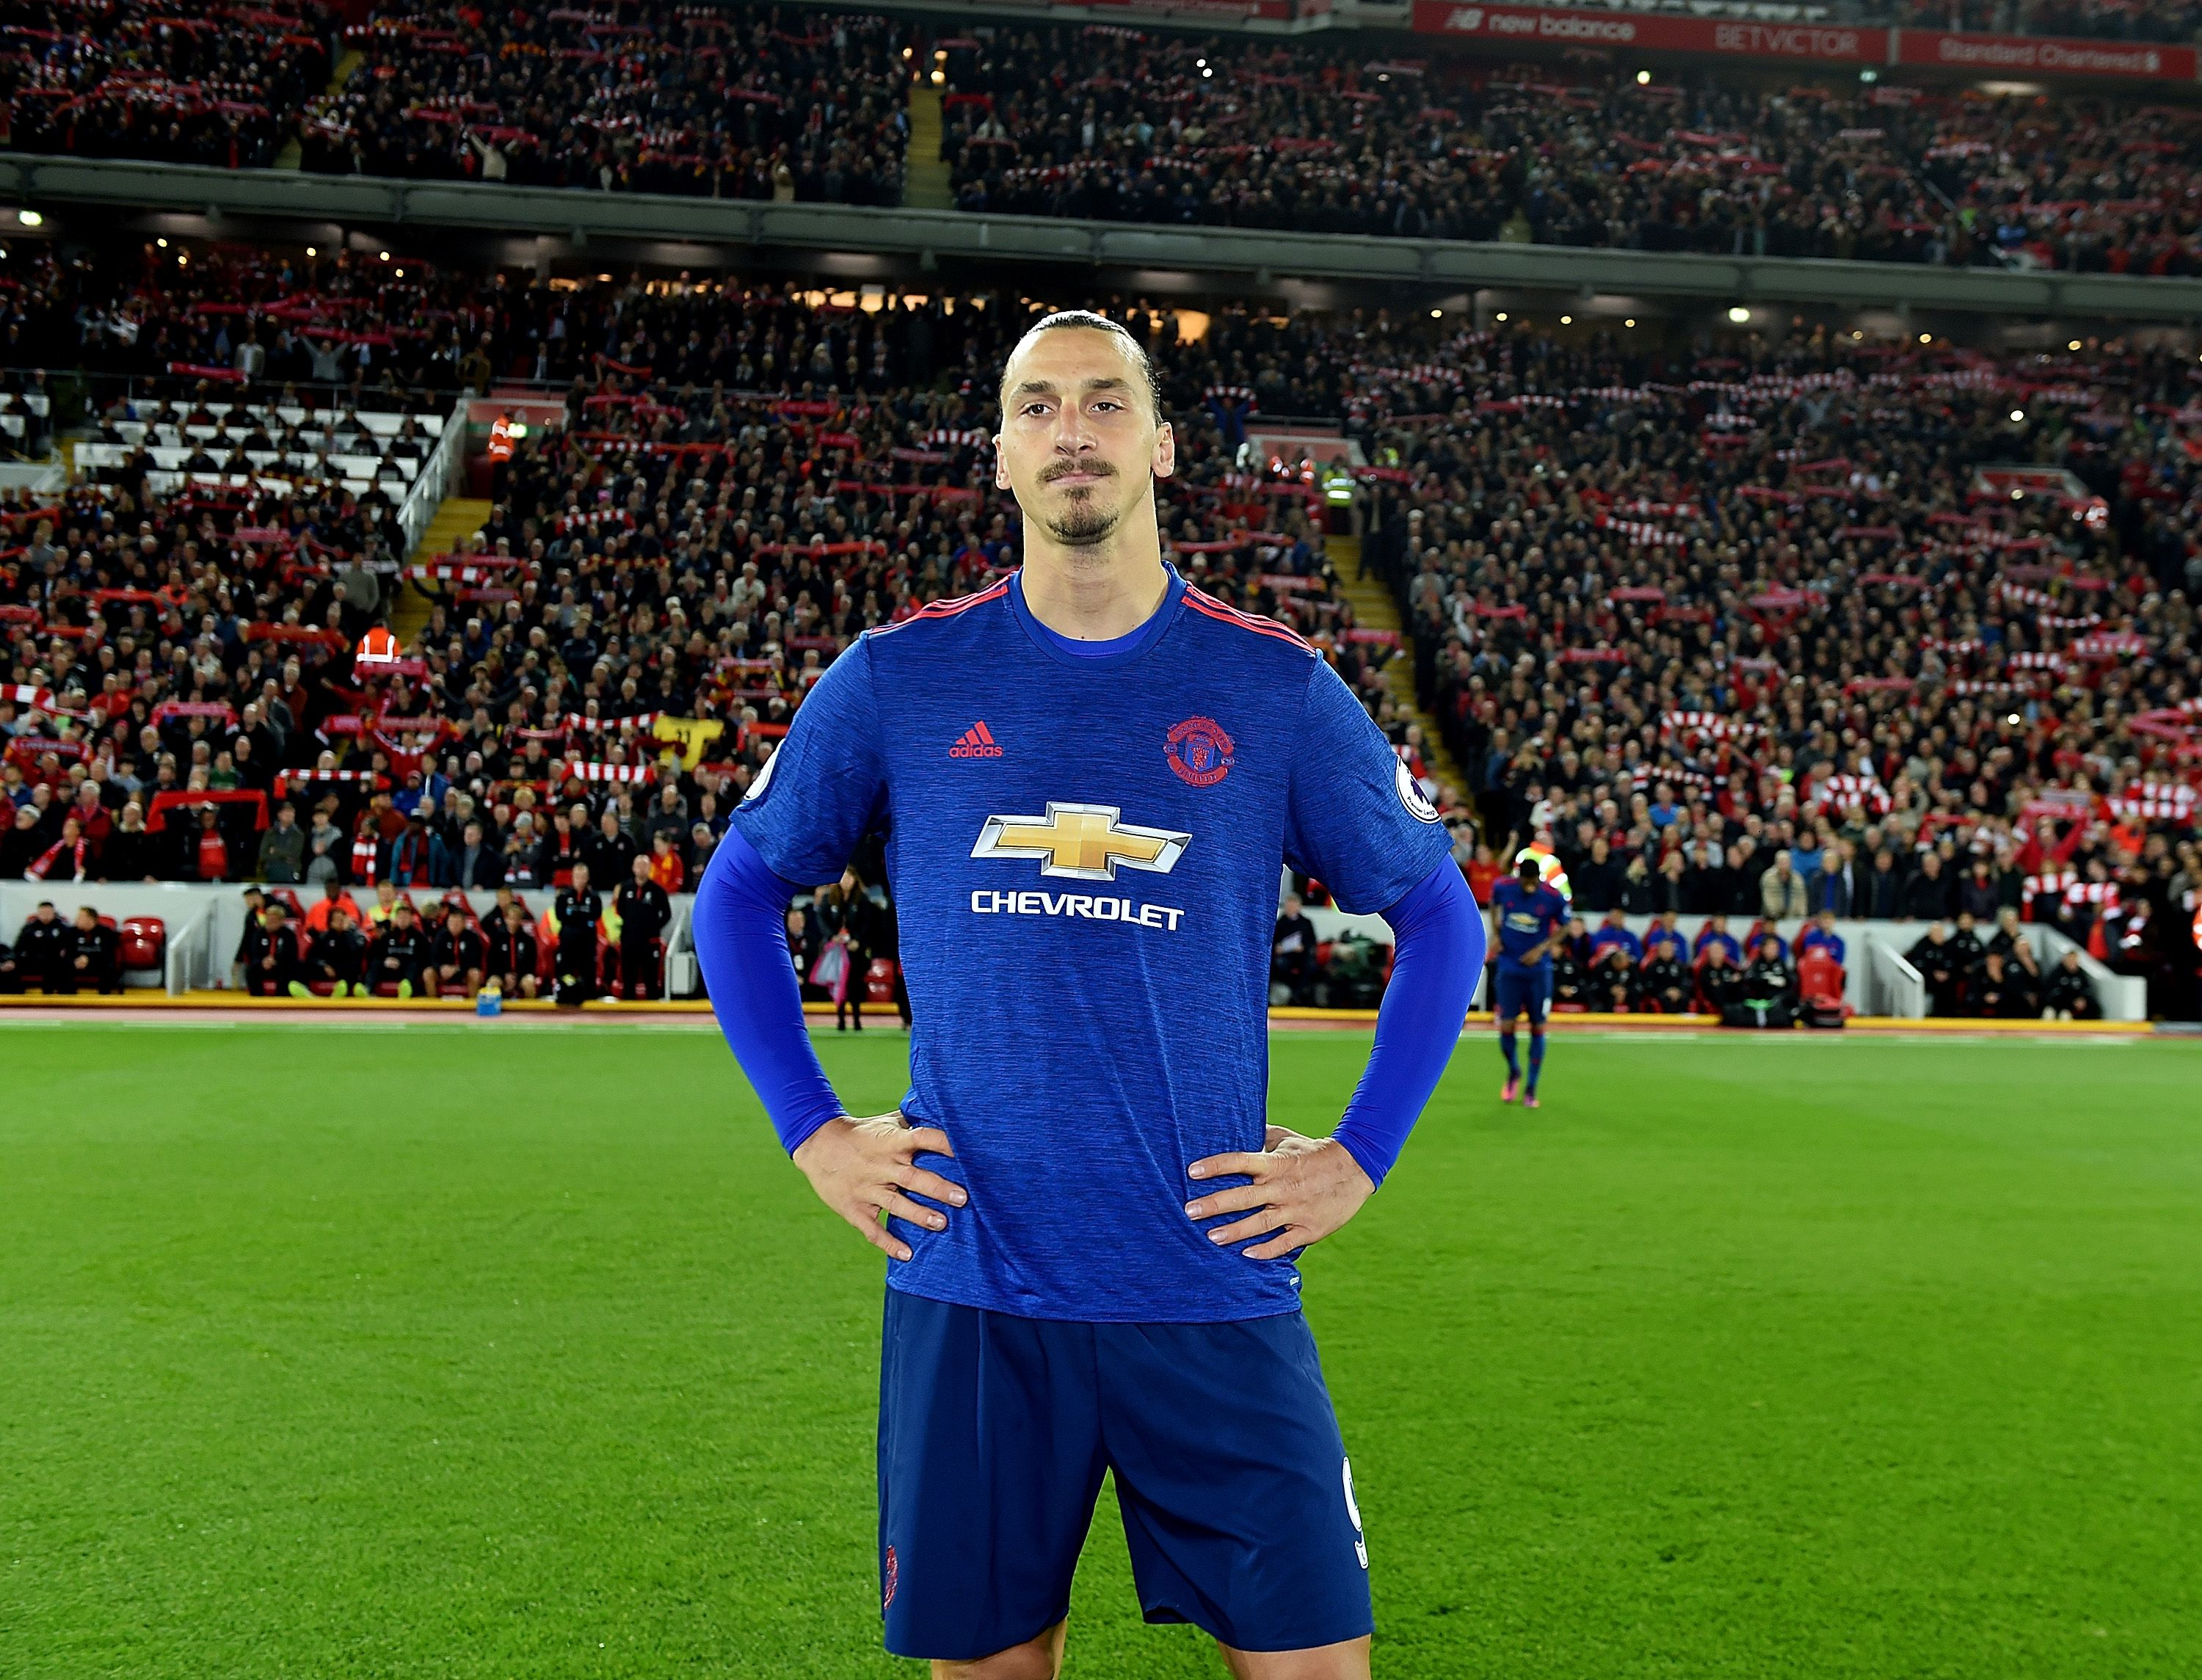 Manchester United star Zlatan Ibrahimovic is the signing of the season, says Owen Hargreaves